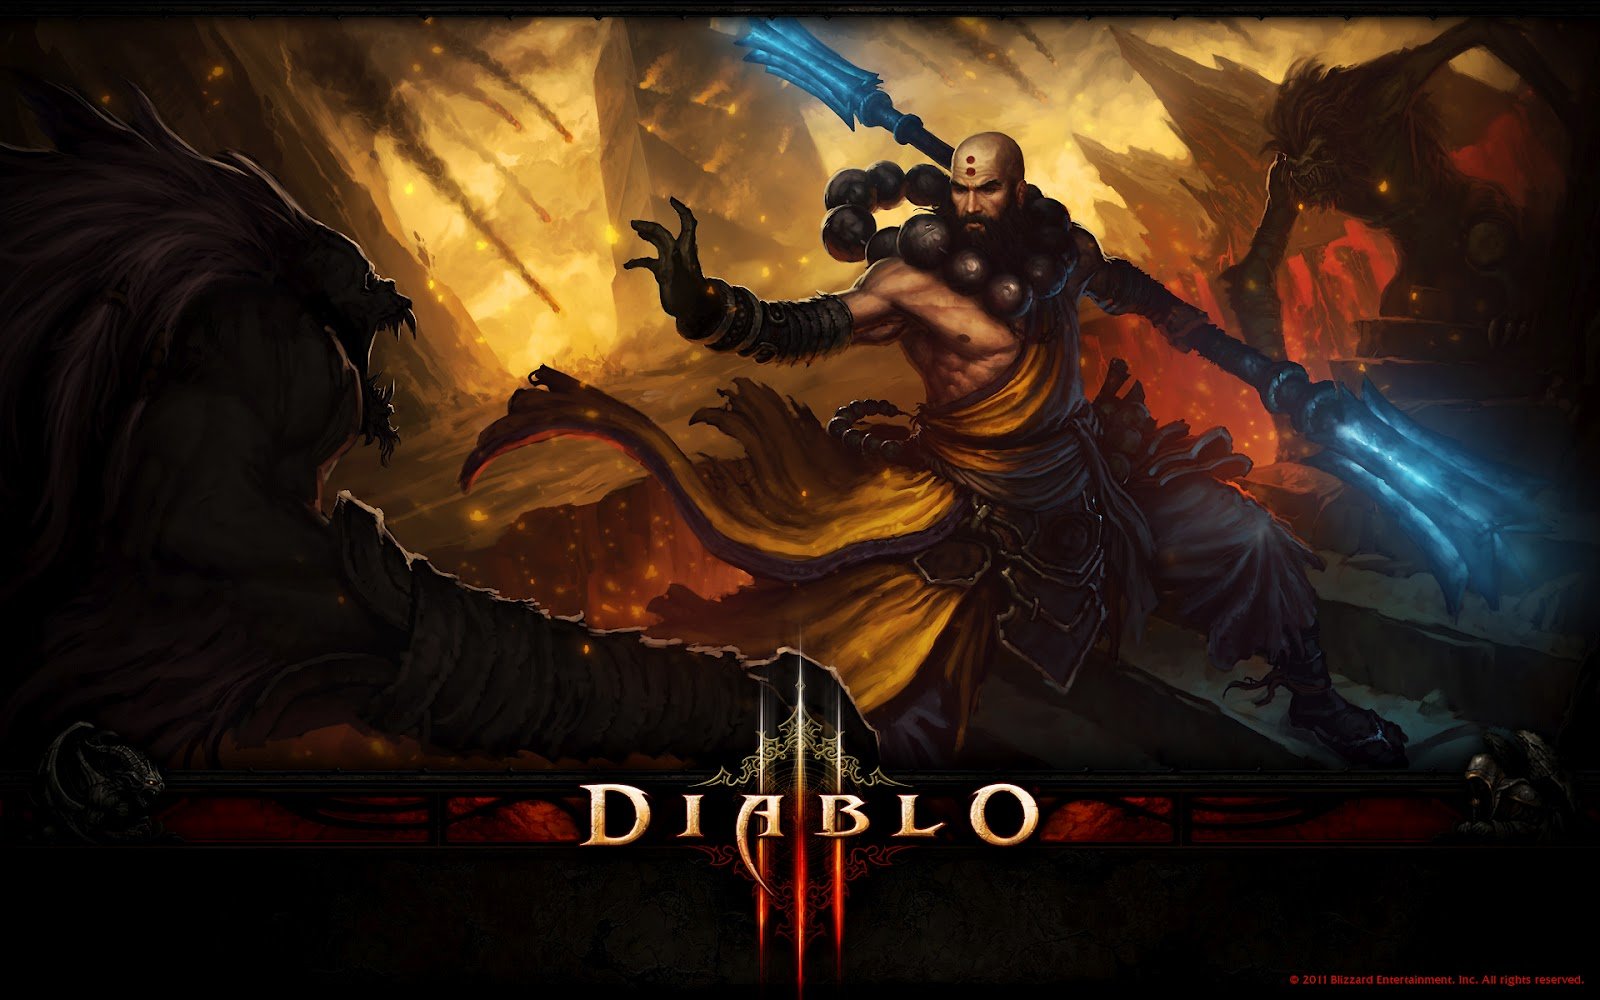 diablo wallpaper 2560x1440 - photo #26